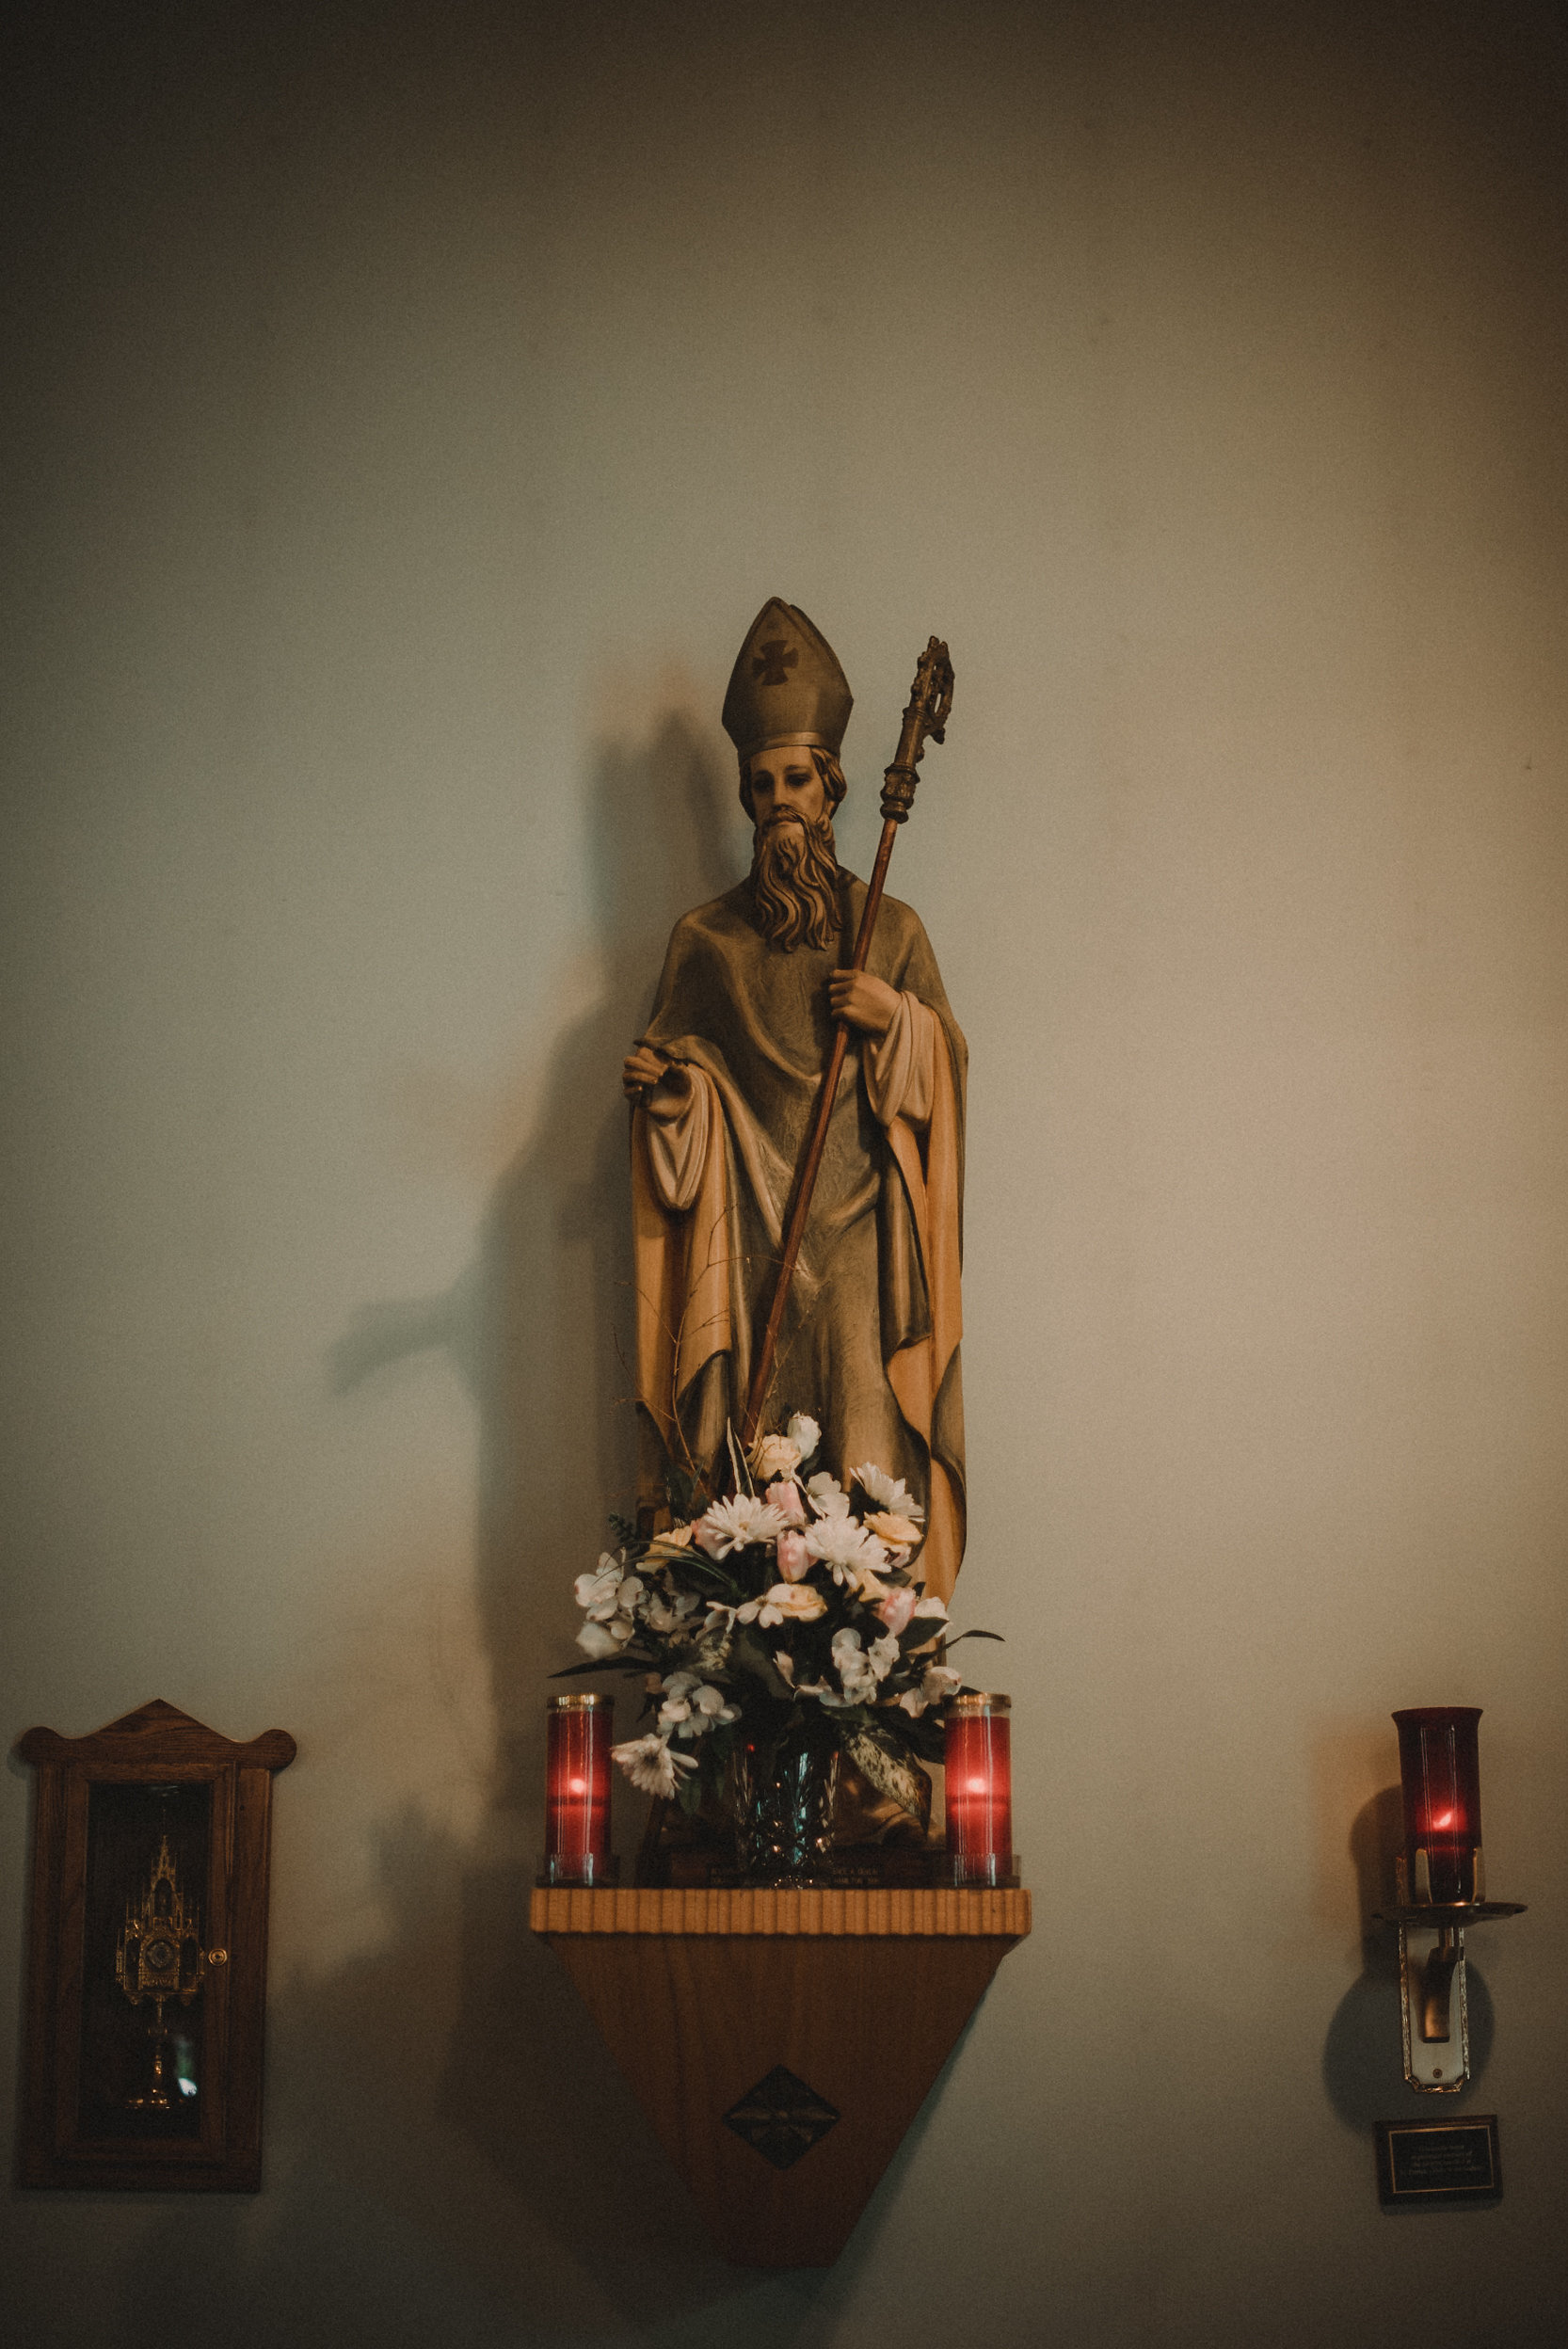 Statuette in Catholic church